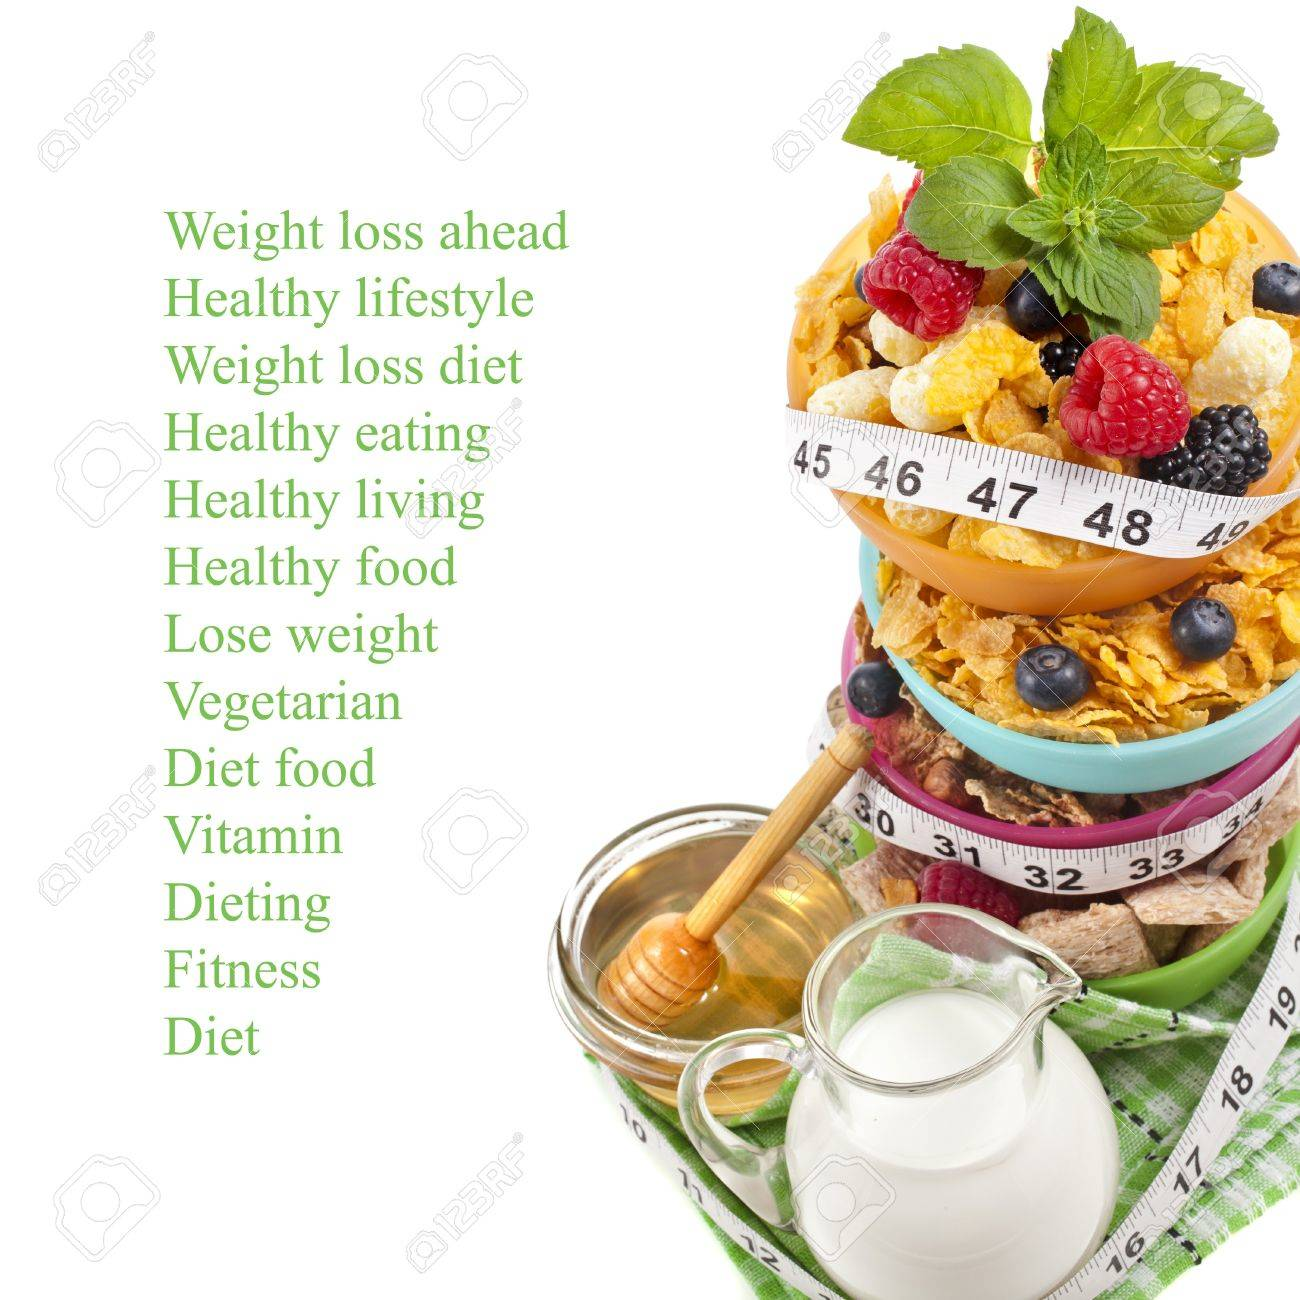 Best vitamins and minerals to lose weight photo 3